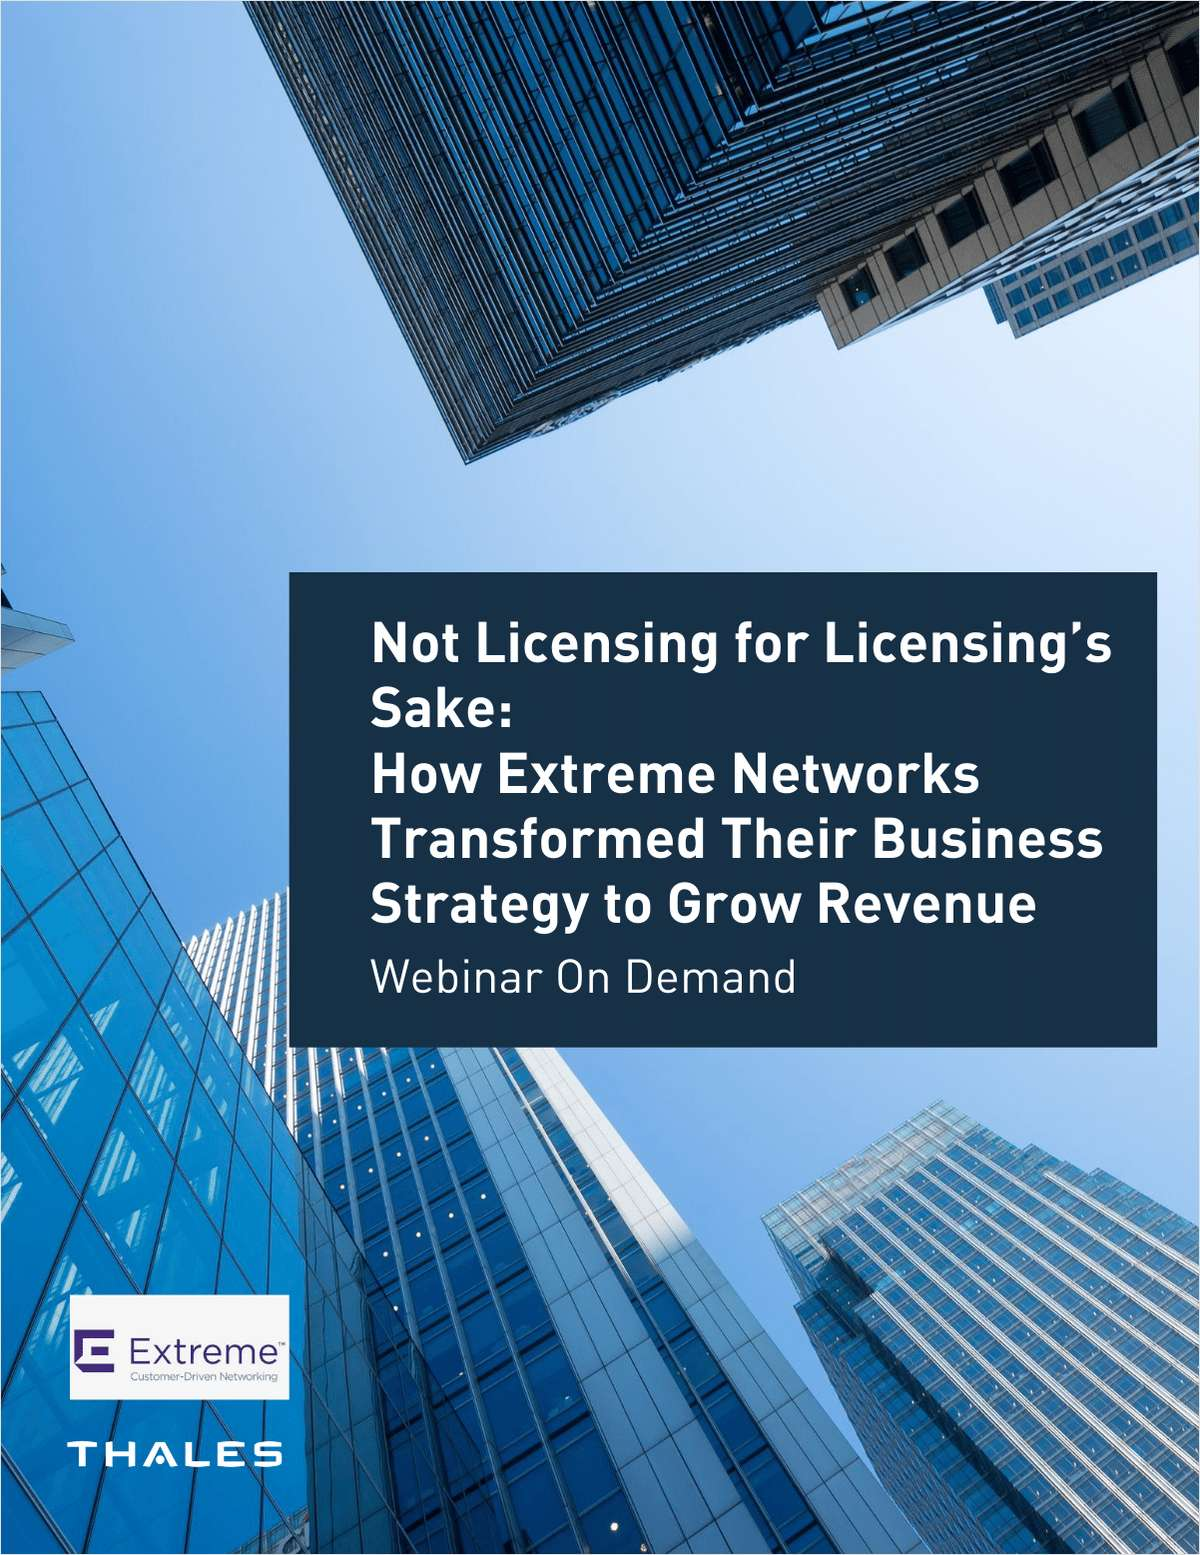 How Extreme Networks Transformed Their Business Strategy to Grow Revenue